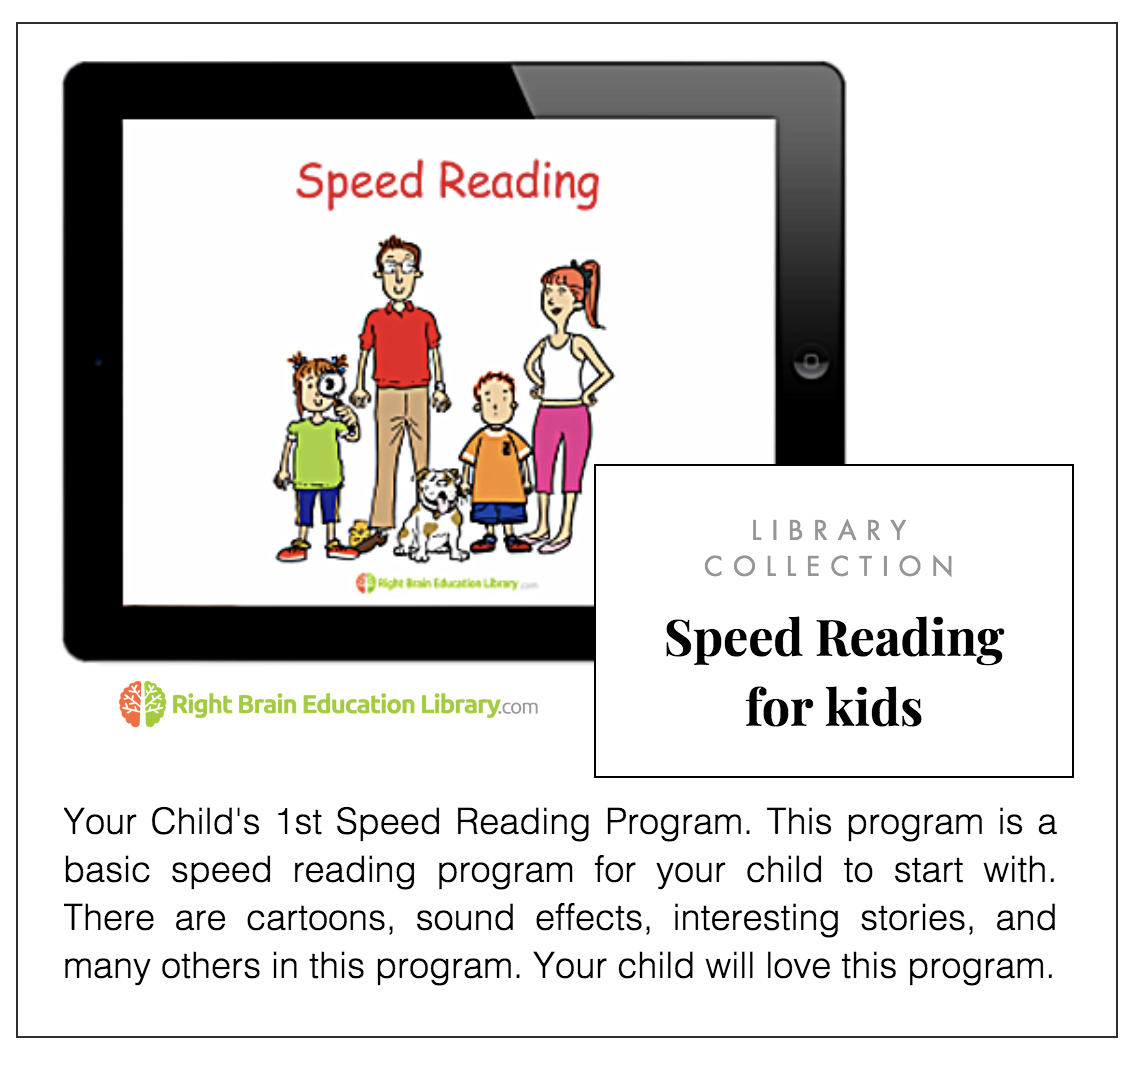 Your Child's 1st Speed Reading Program  This program is a